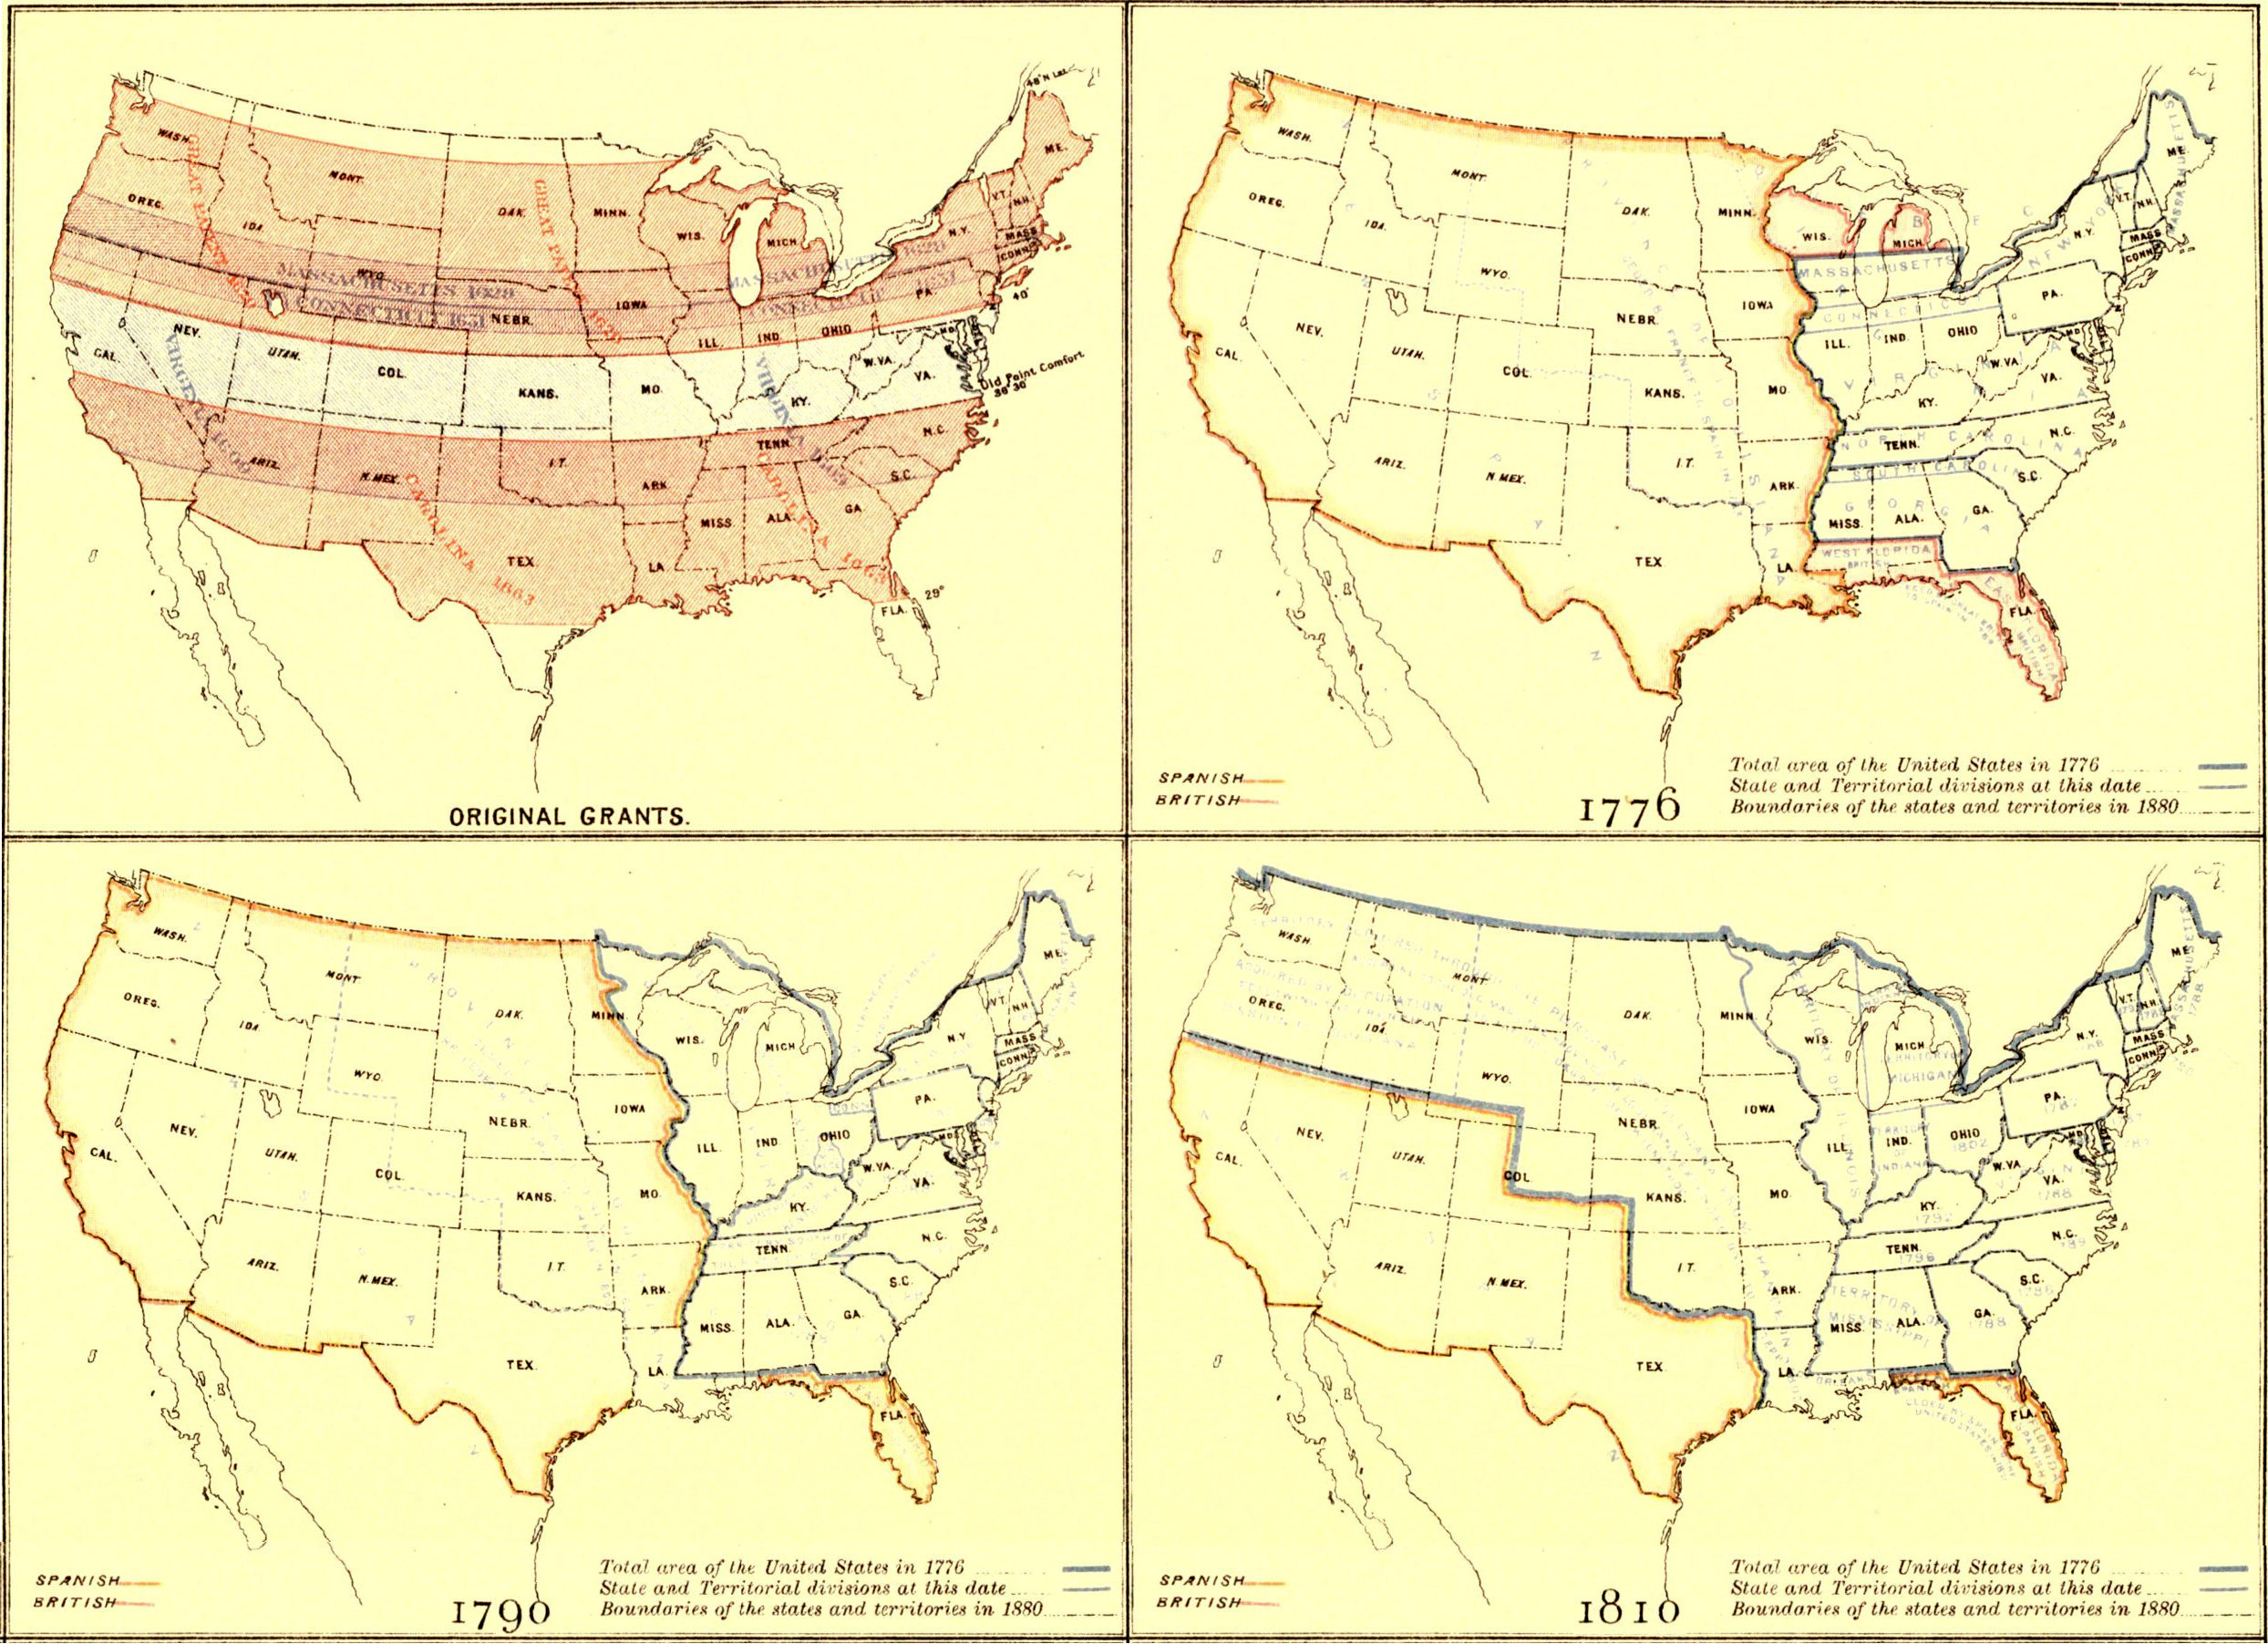 File:EB9 United States - historical maps (top).jpg - Wikimedia Commons